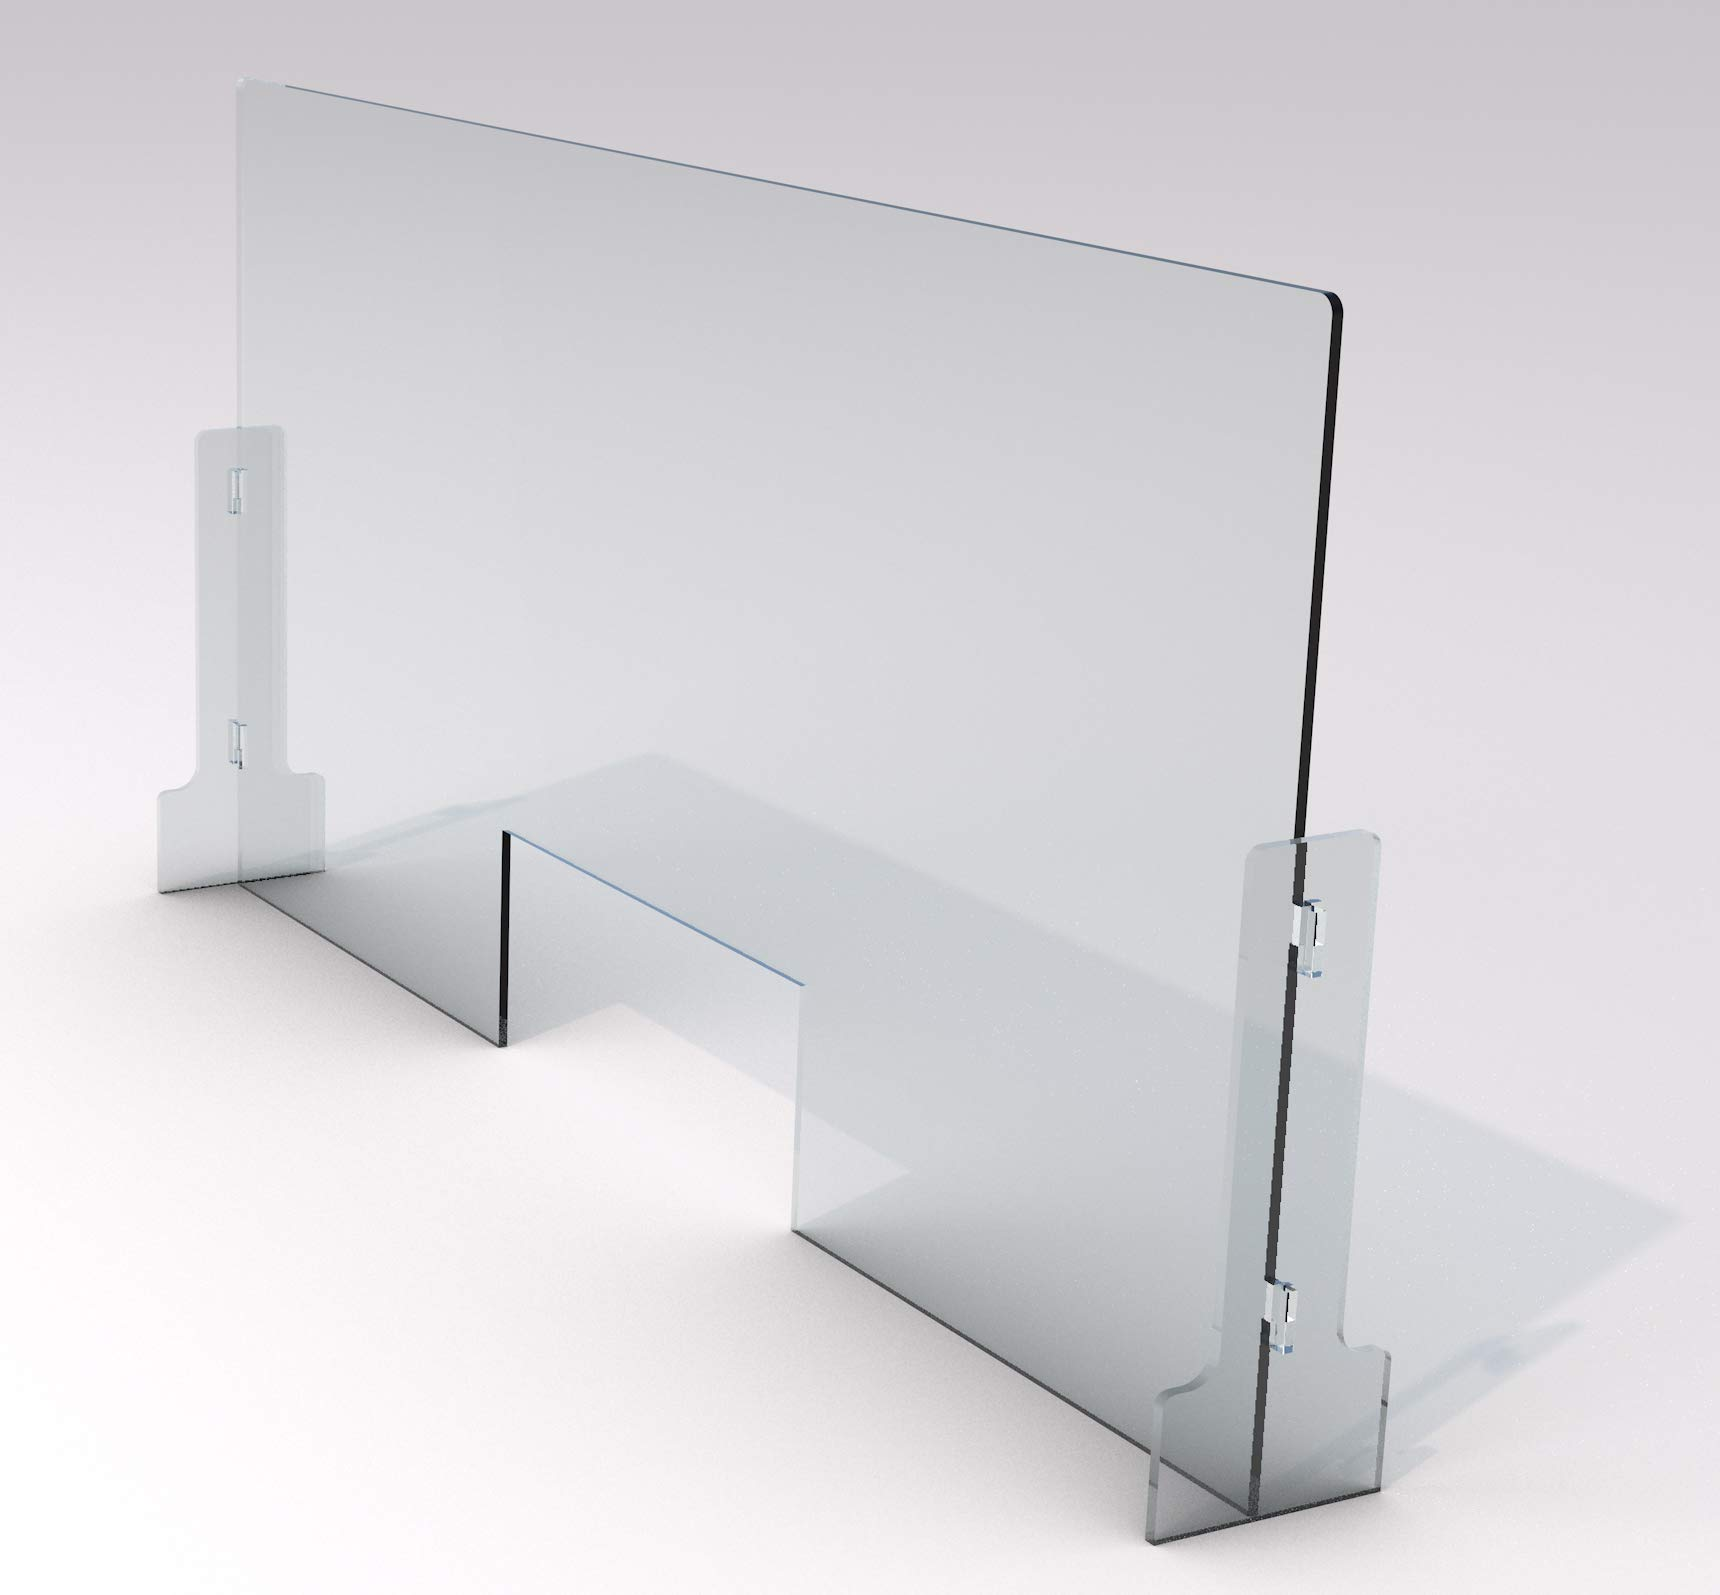 Sneezedefense Protective Sneeze Guard For Counter Desk Freestanding Clear Acrylic Shield For Business Customer Safety Portable Plexiglass Barrier Pass Through Transaction Window 36 W X 24 H Home Improvement